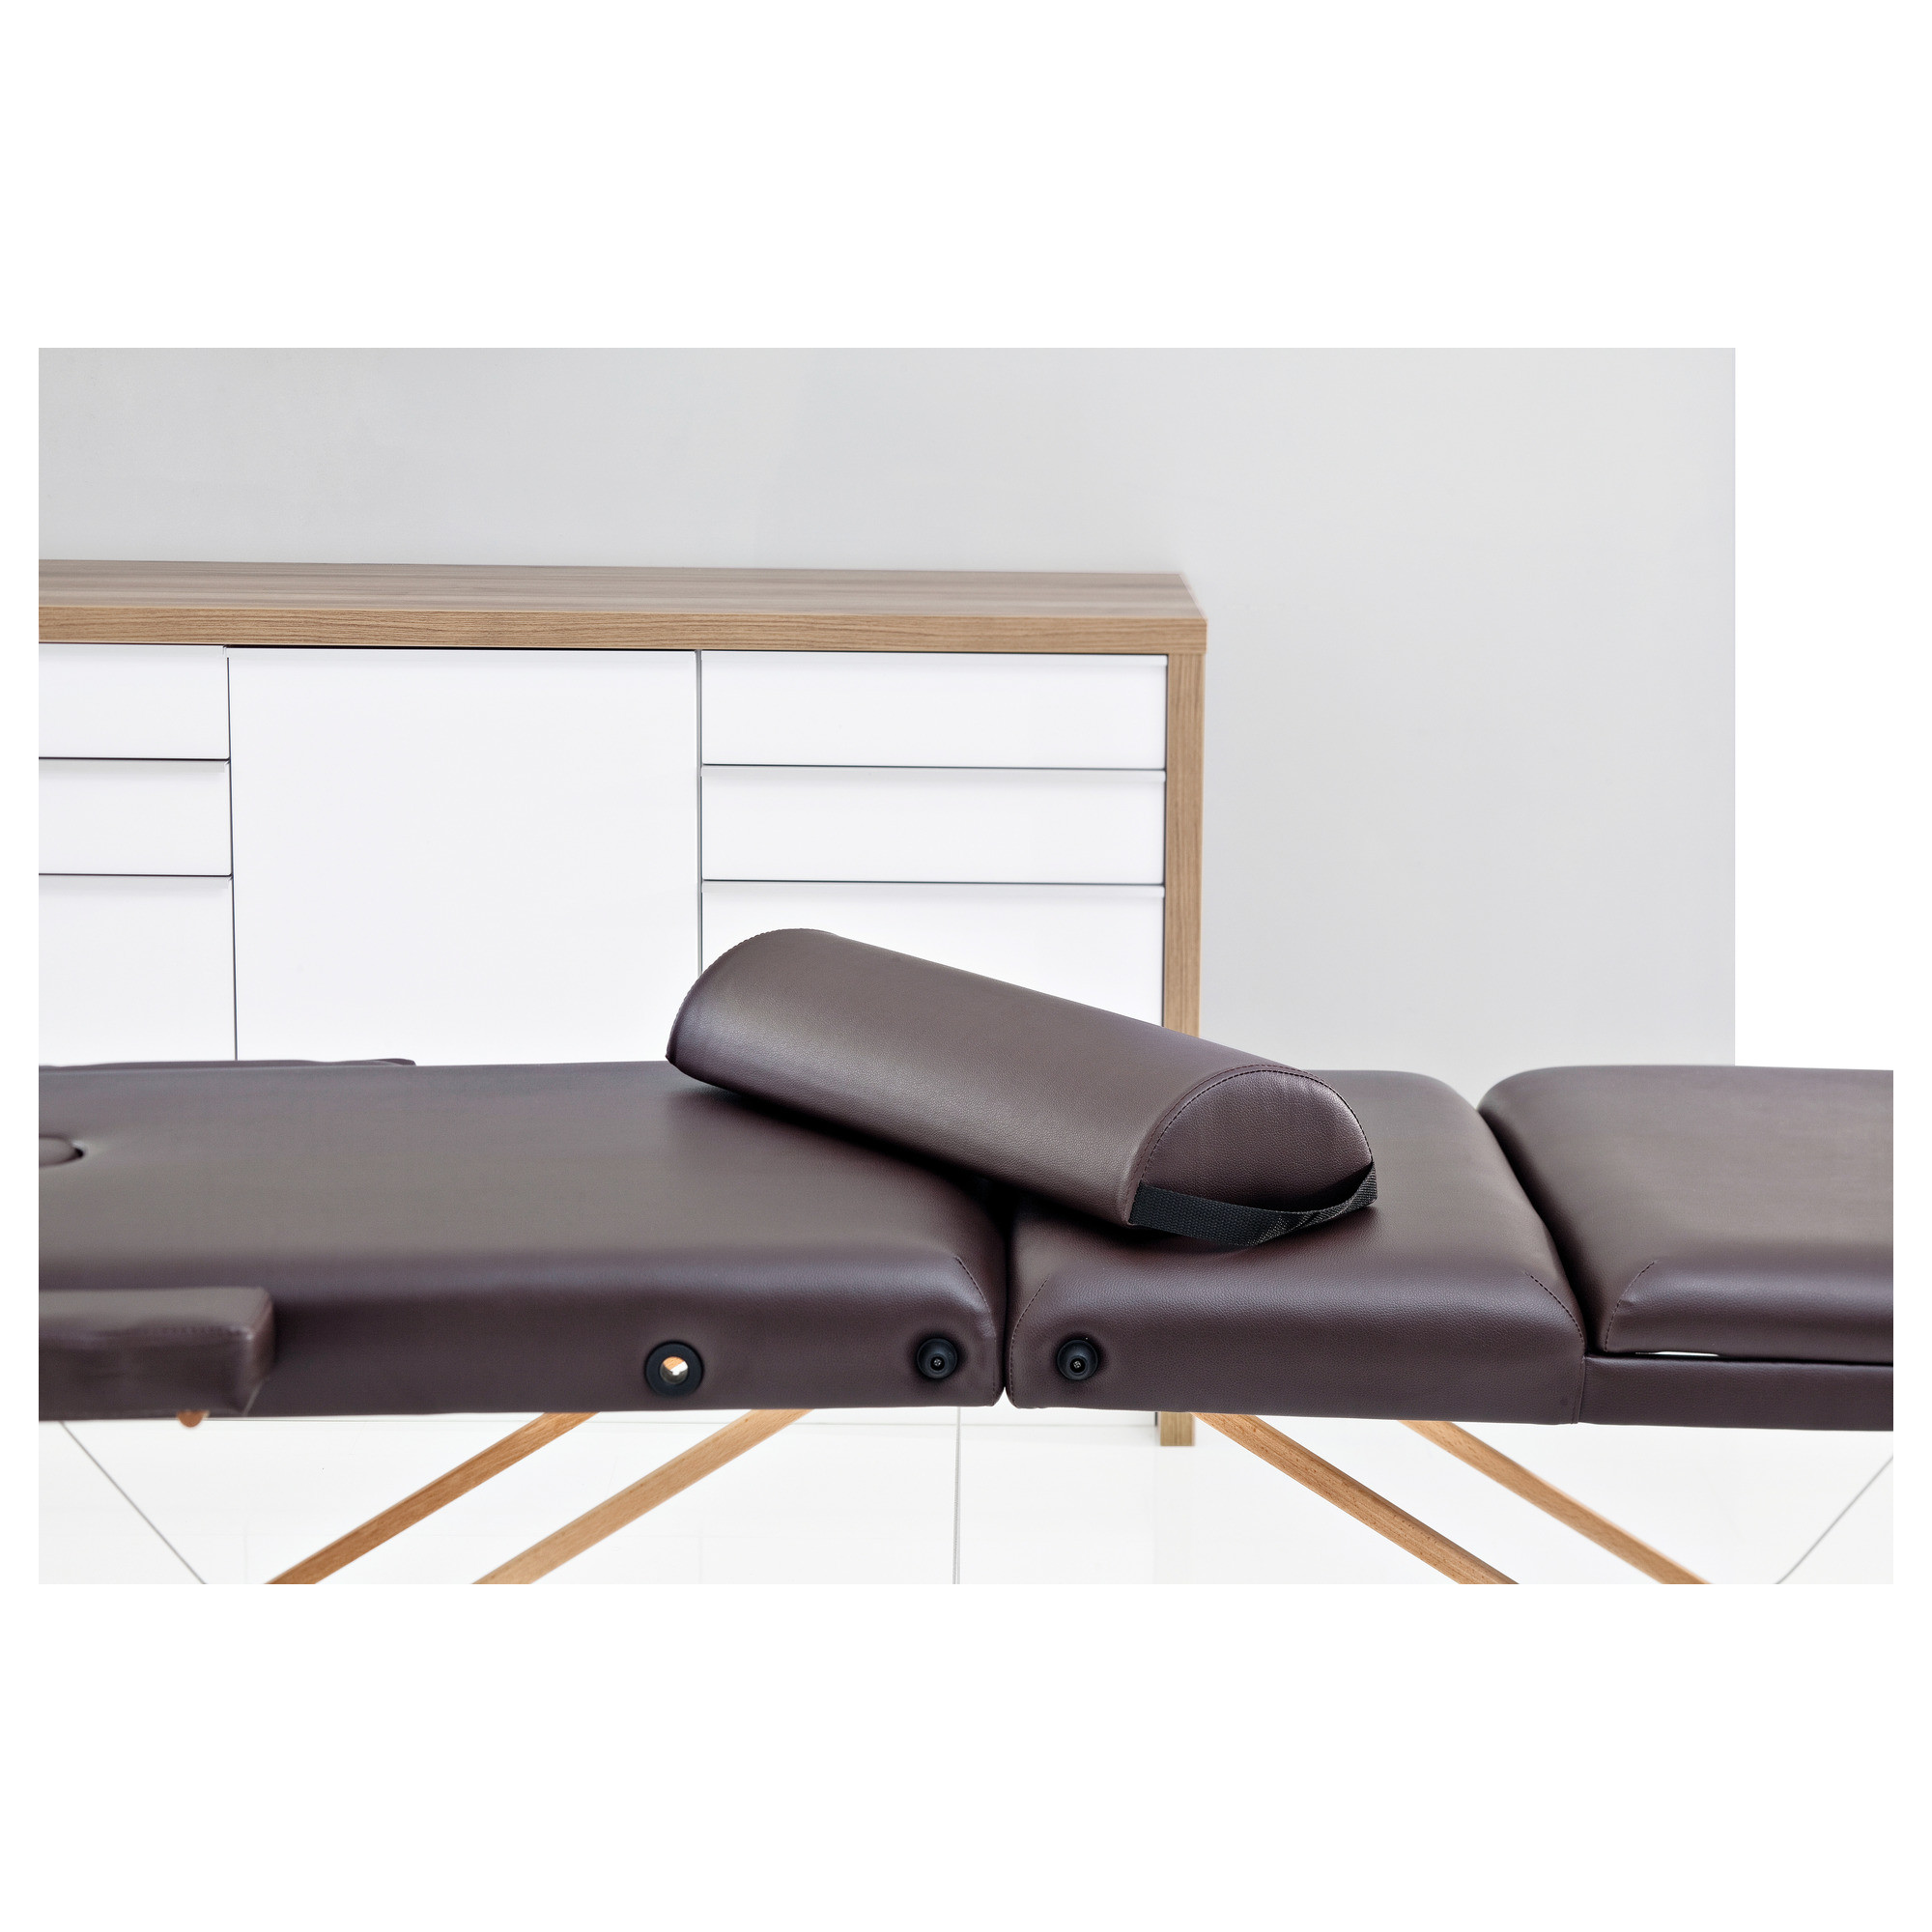 Demi-rouleau pour la table de massage mobile Ruck